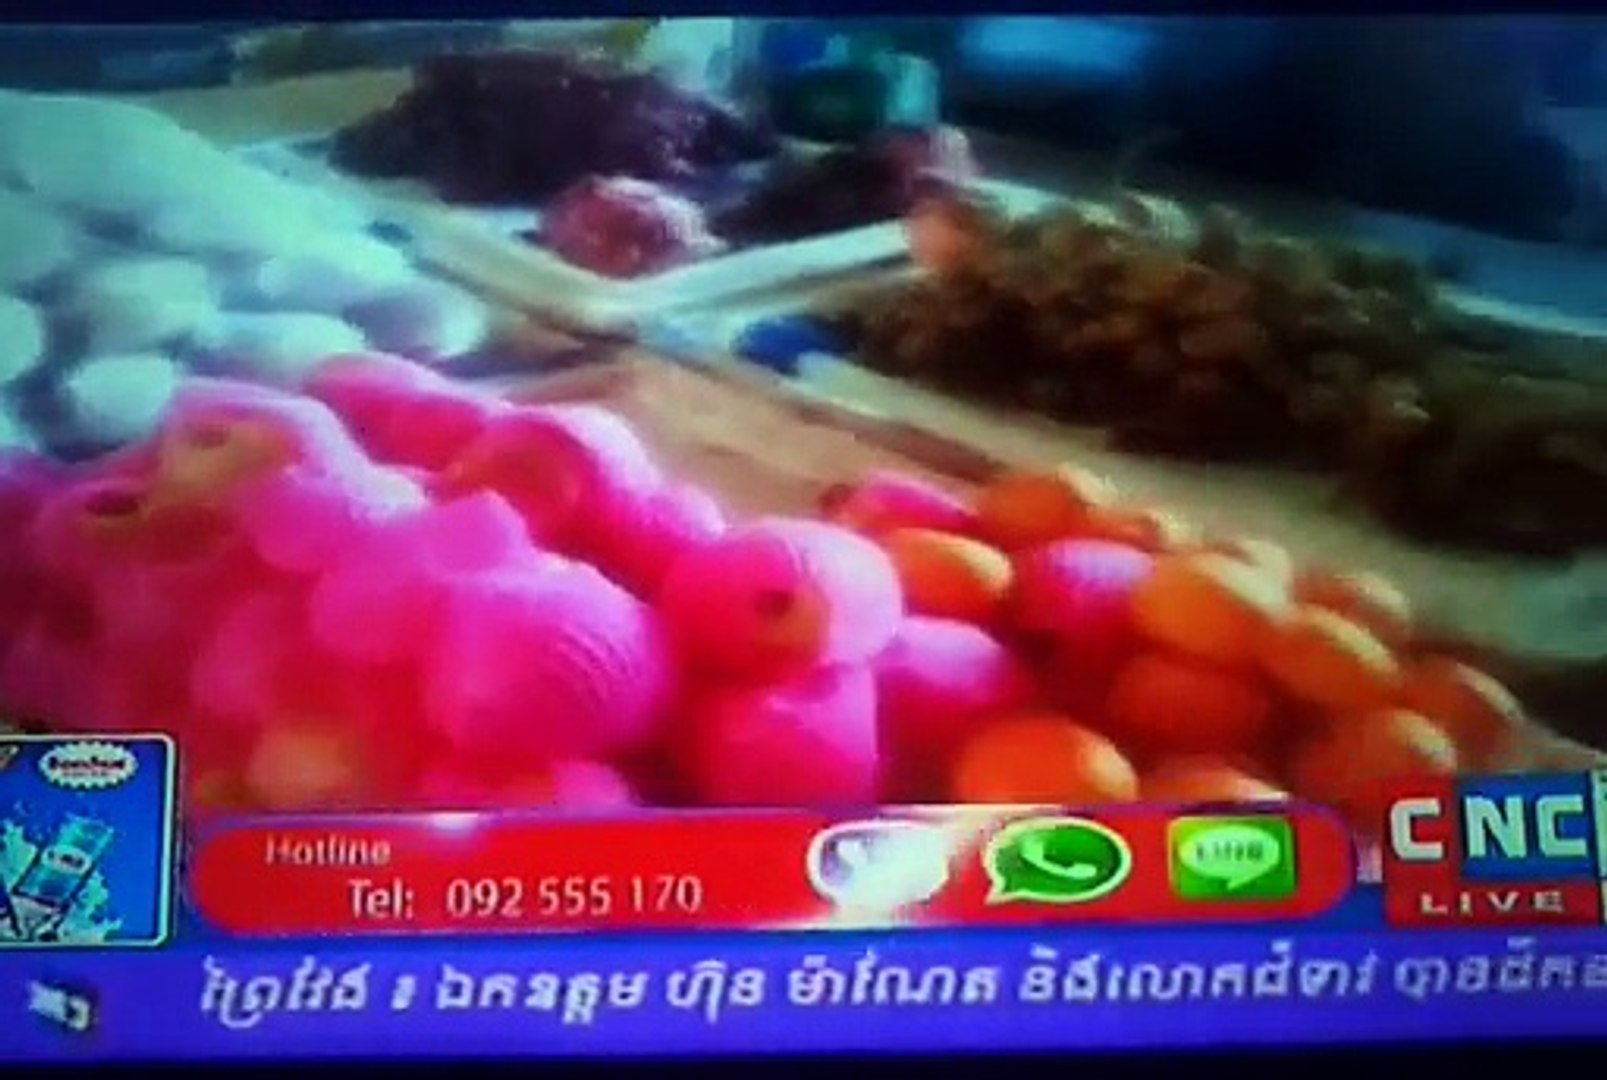 Khmer Hot News today | Cambodia News This Week | CTN, CNC news on 20 July 2015 #2/2